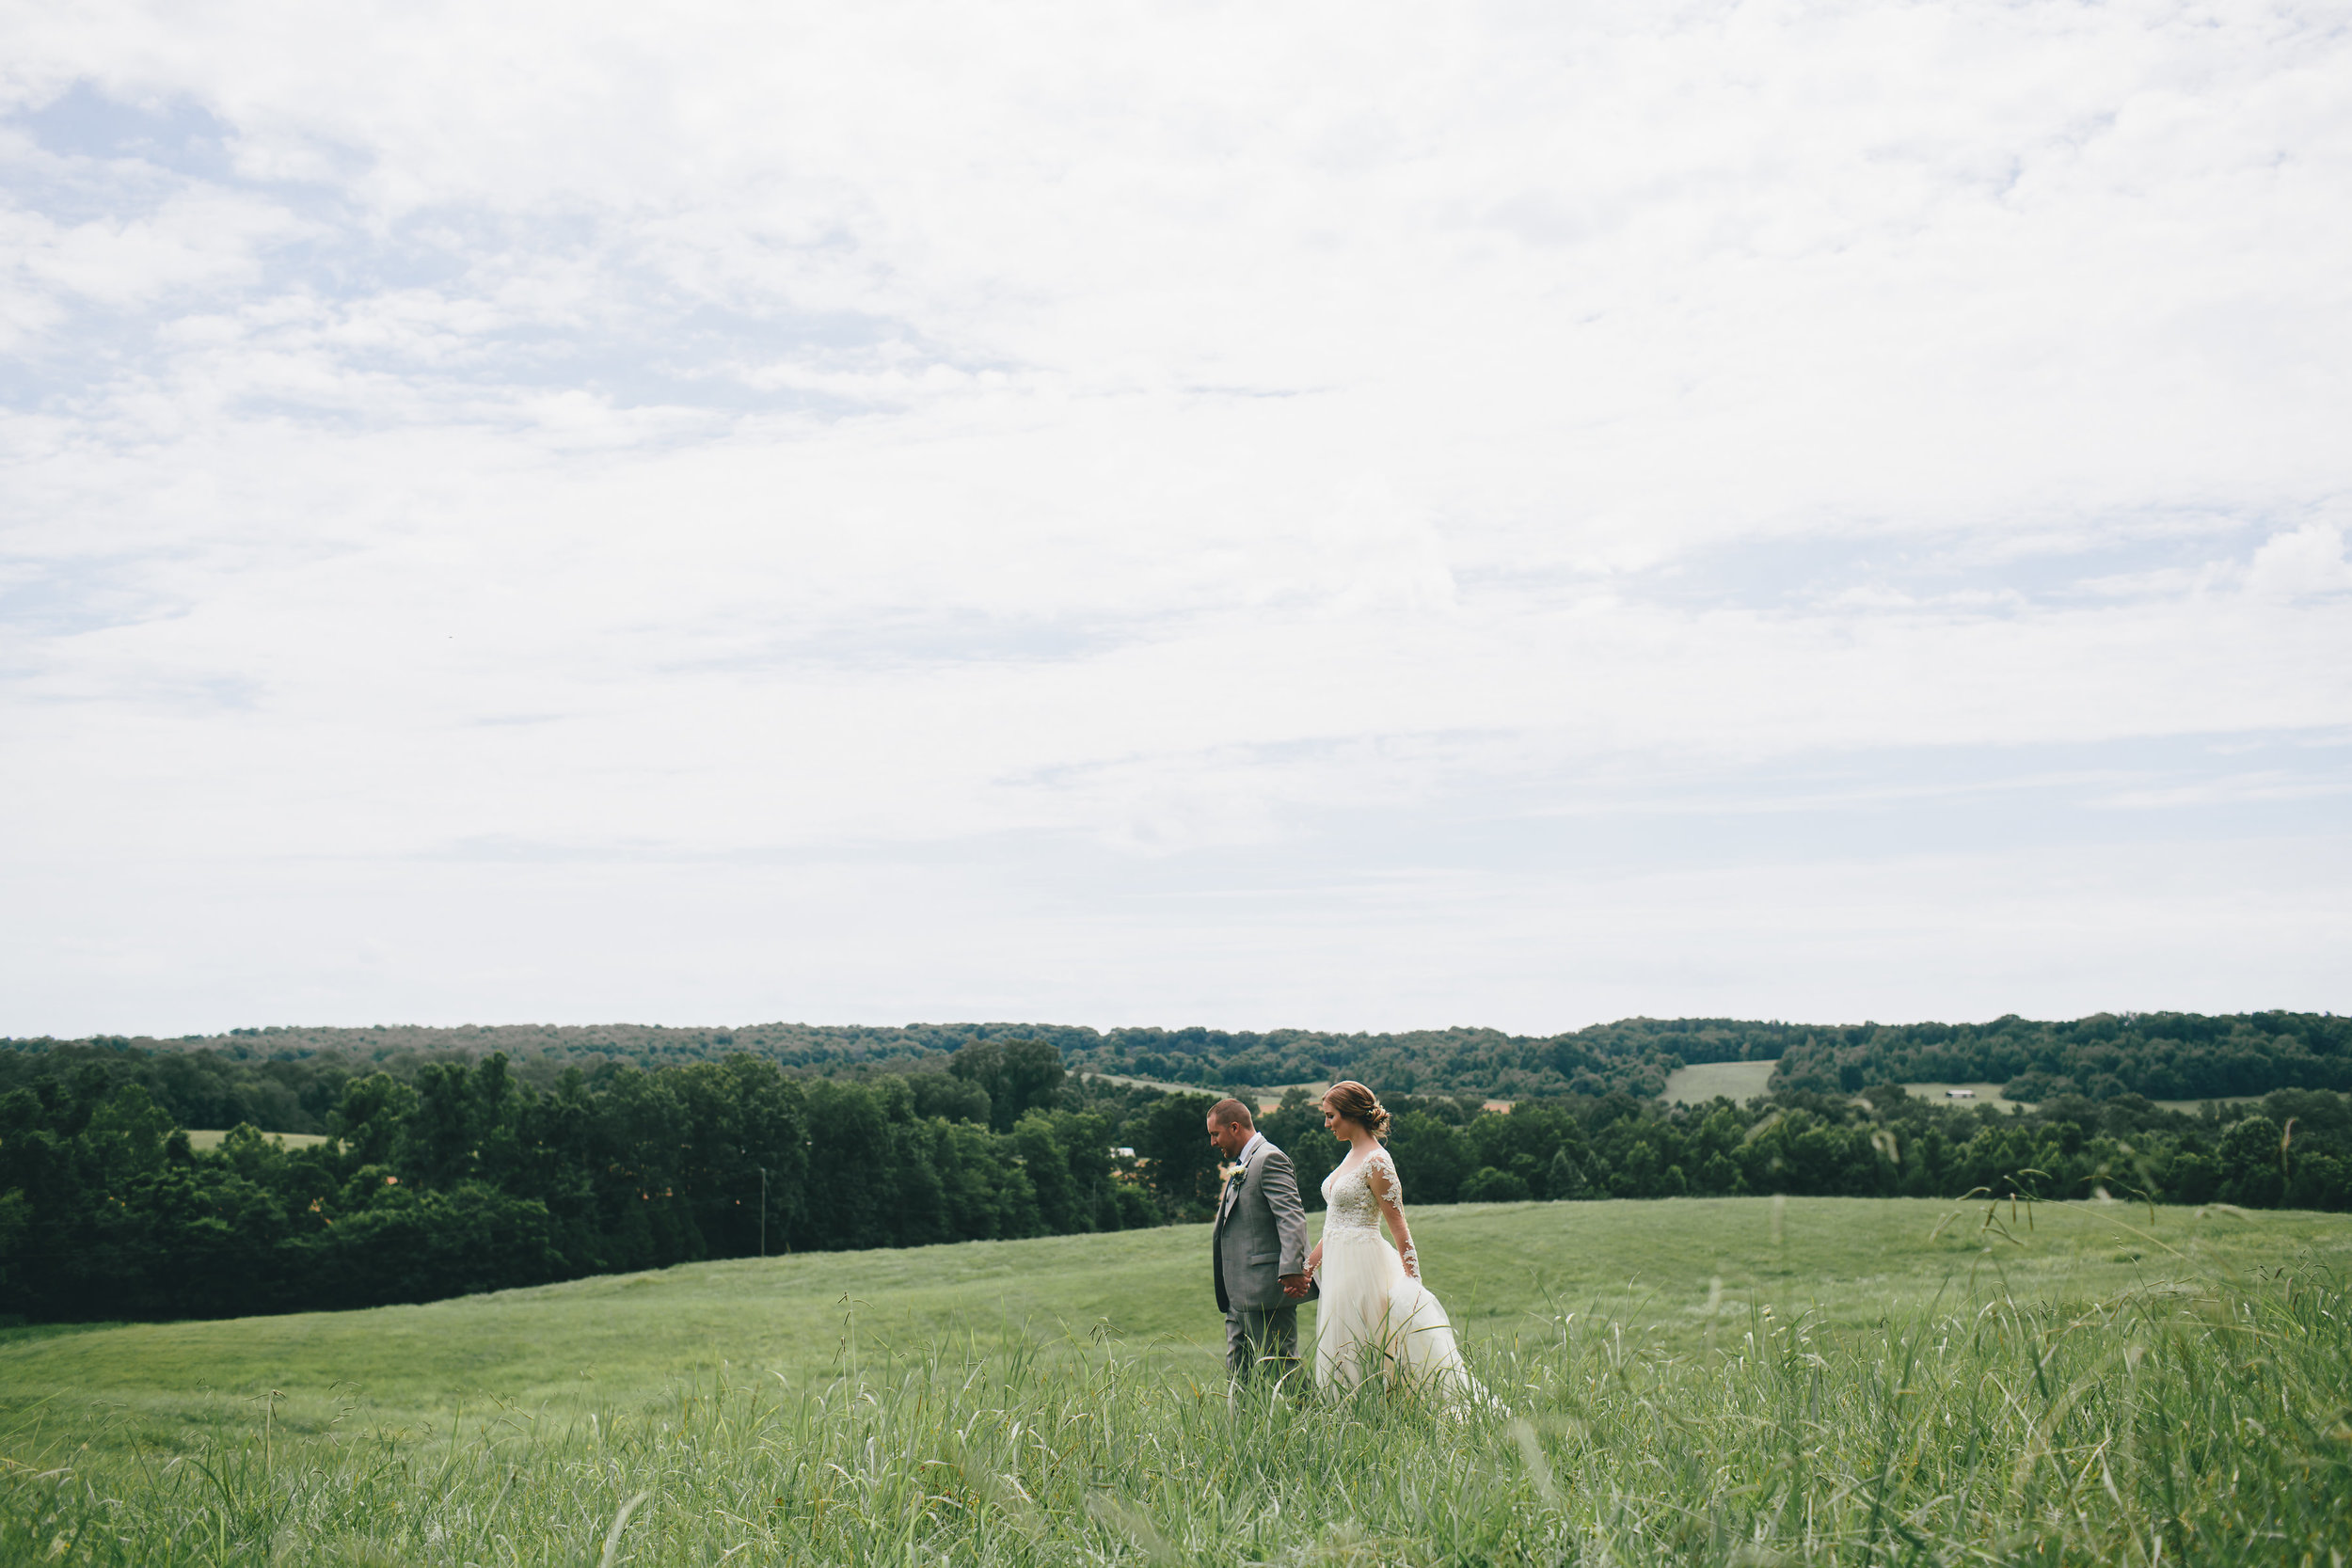 Summer Wedding - Intimate & Charming